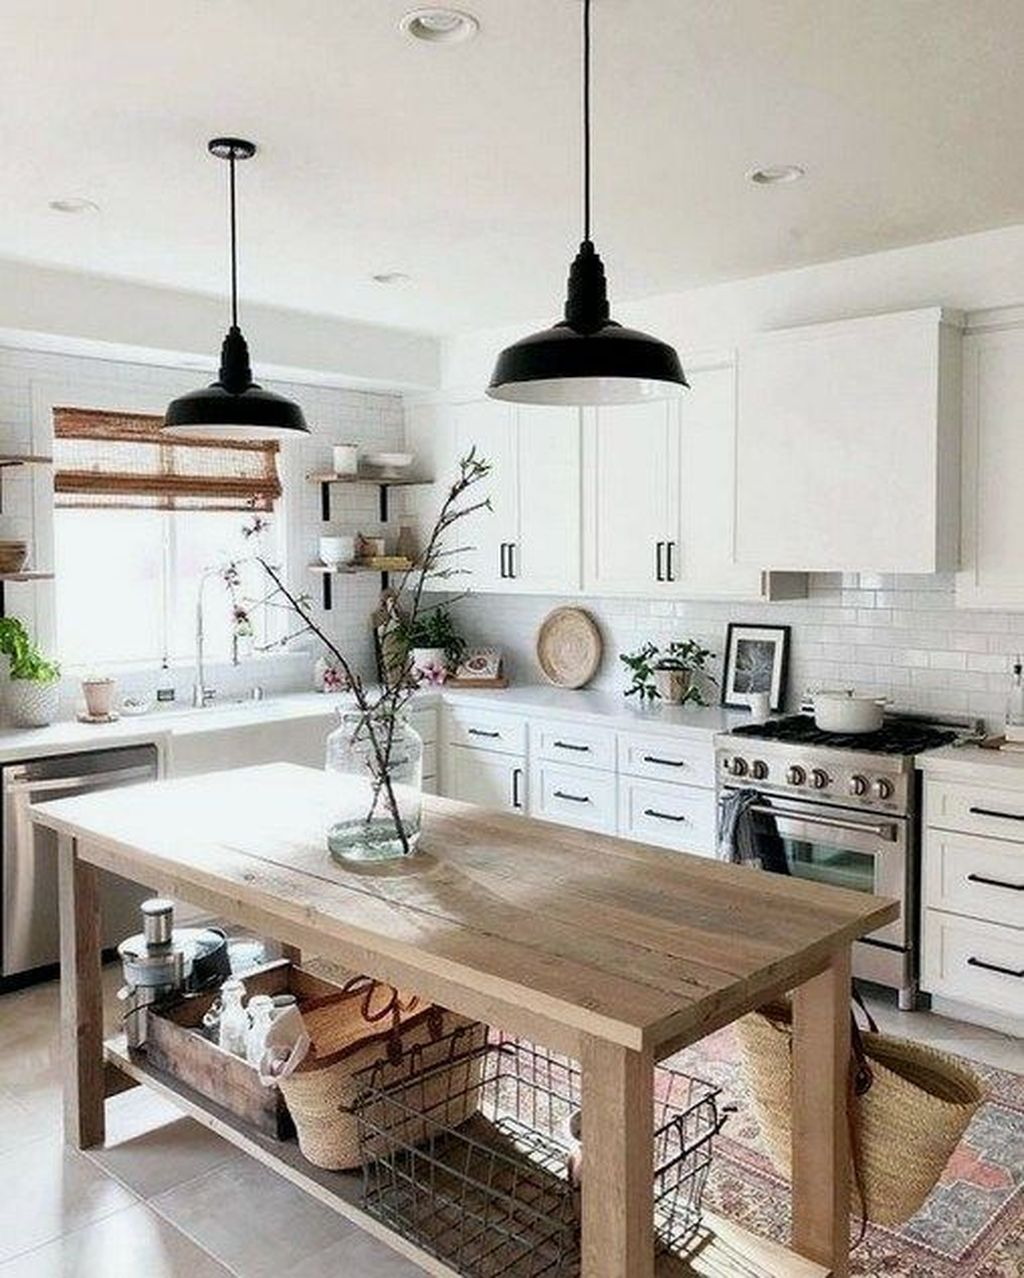 Stunning Farmhouse Kitchen Island Design Ideas 23